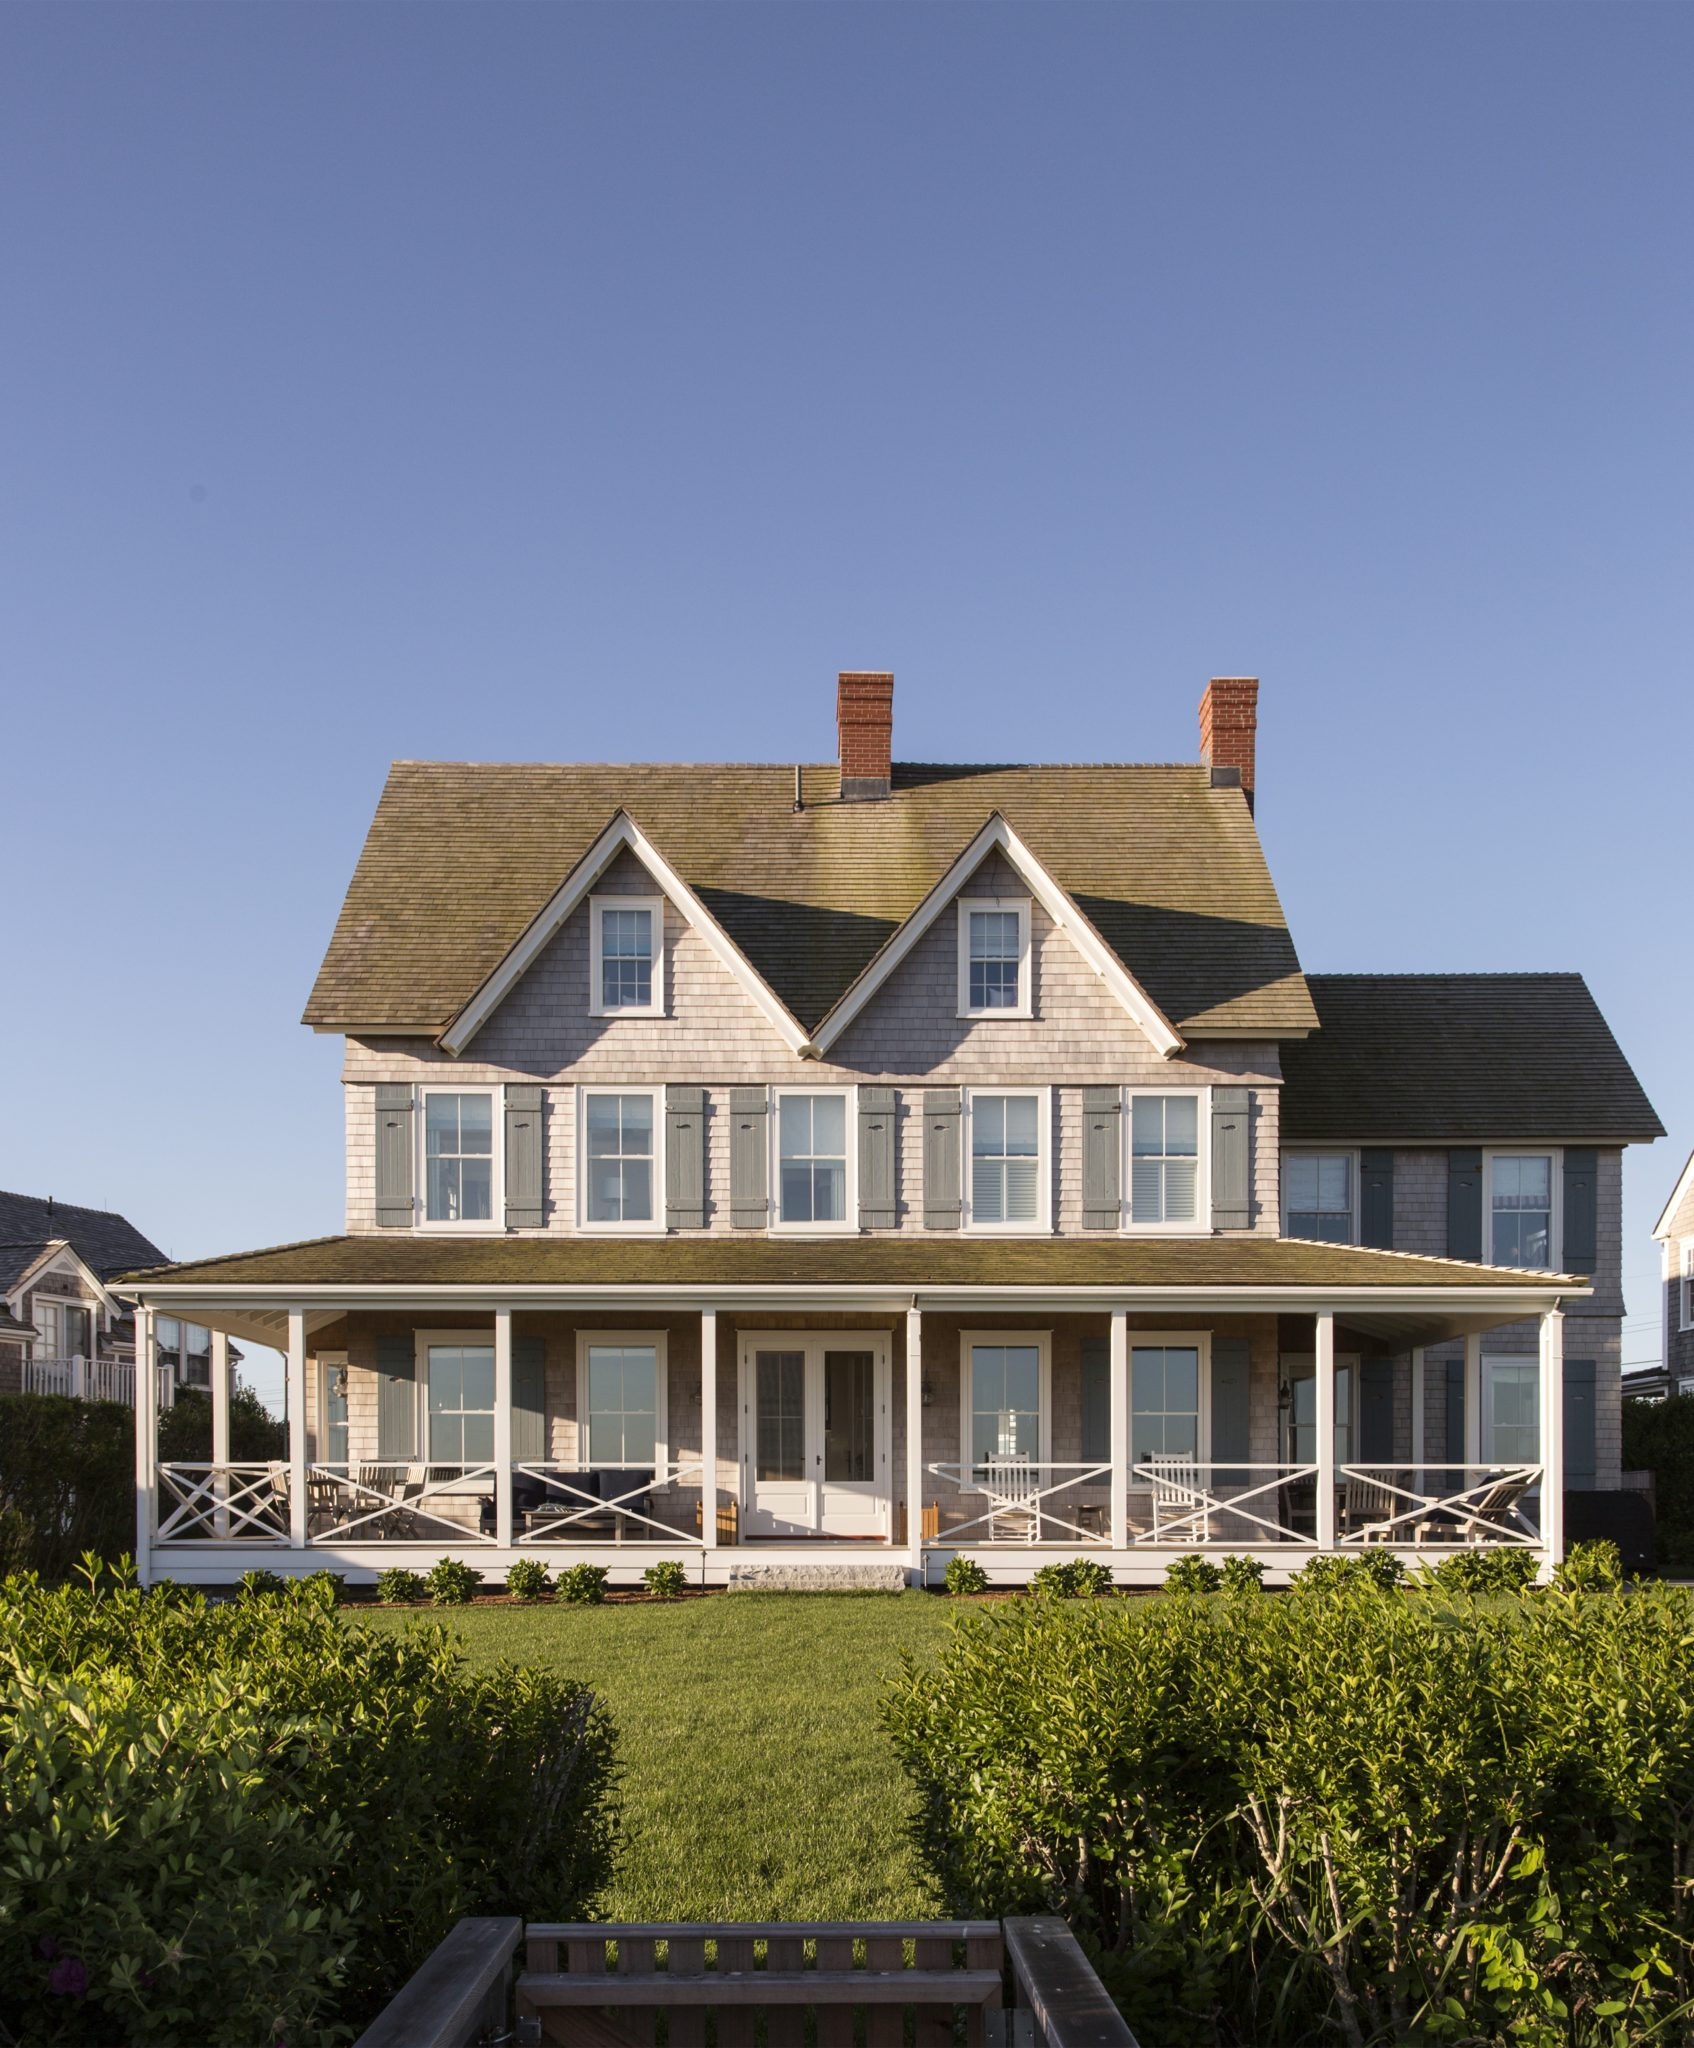 Beautiful shingle style beach house with wrap around porch by SLC Interiors